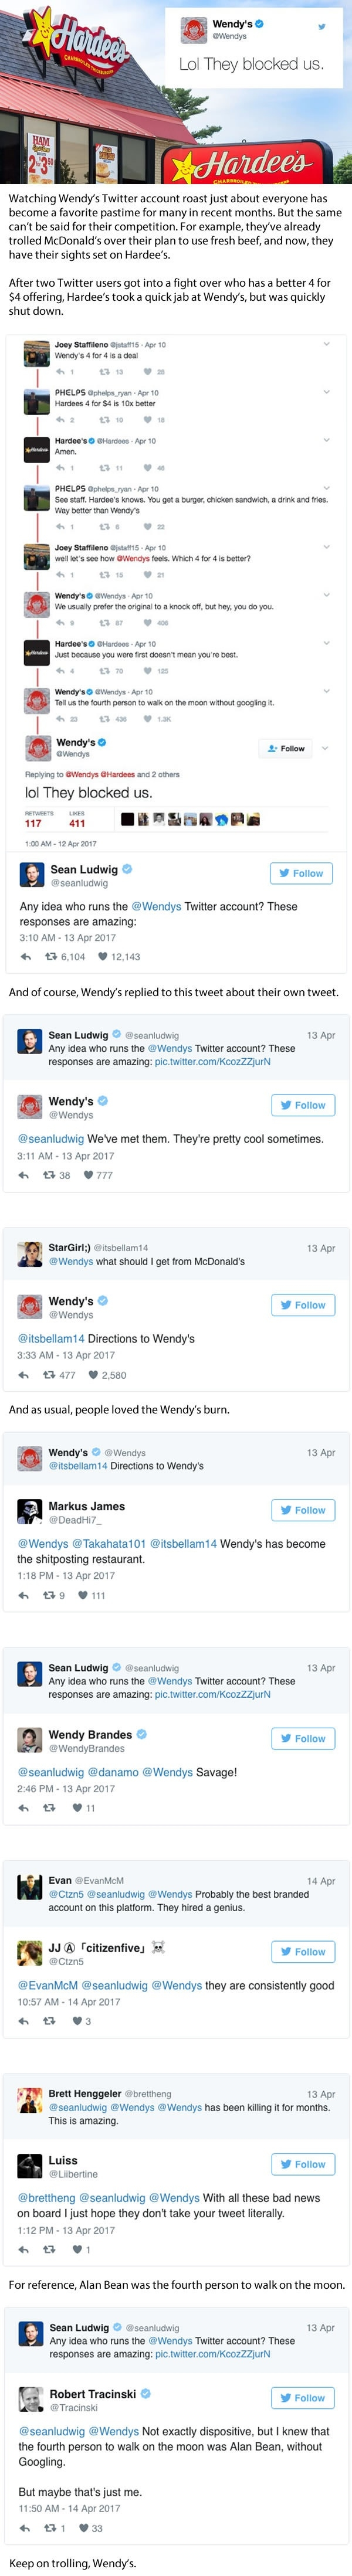 Wendy's trolled Hardee's so hard on twitter they got blocked